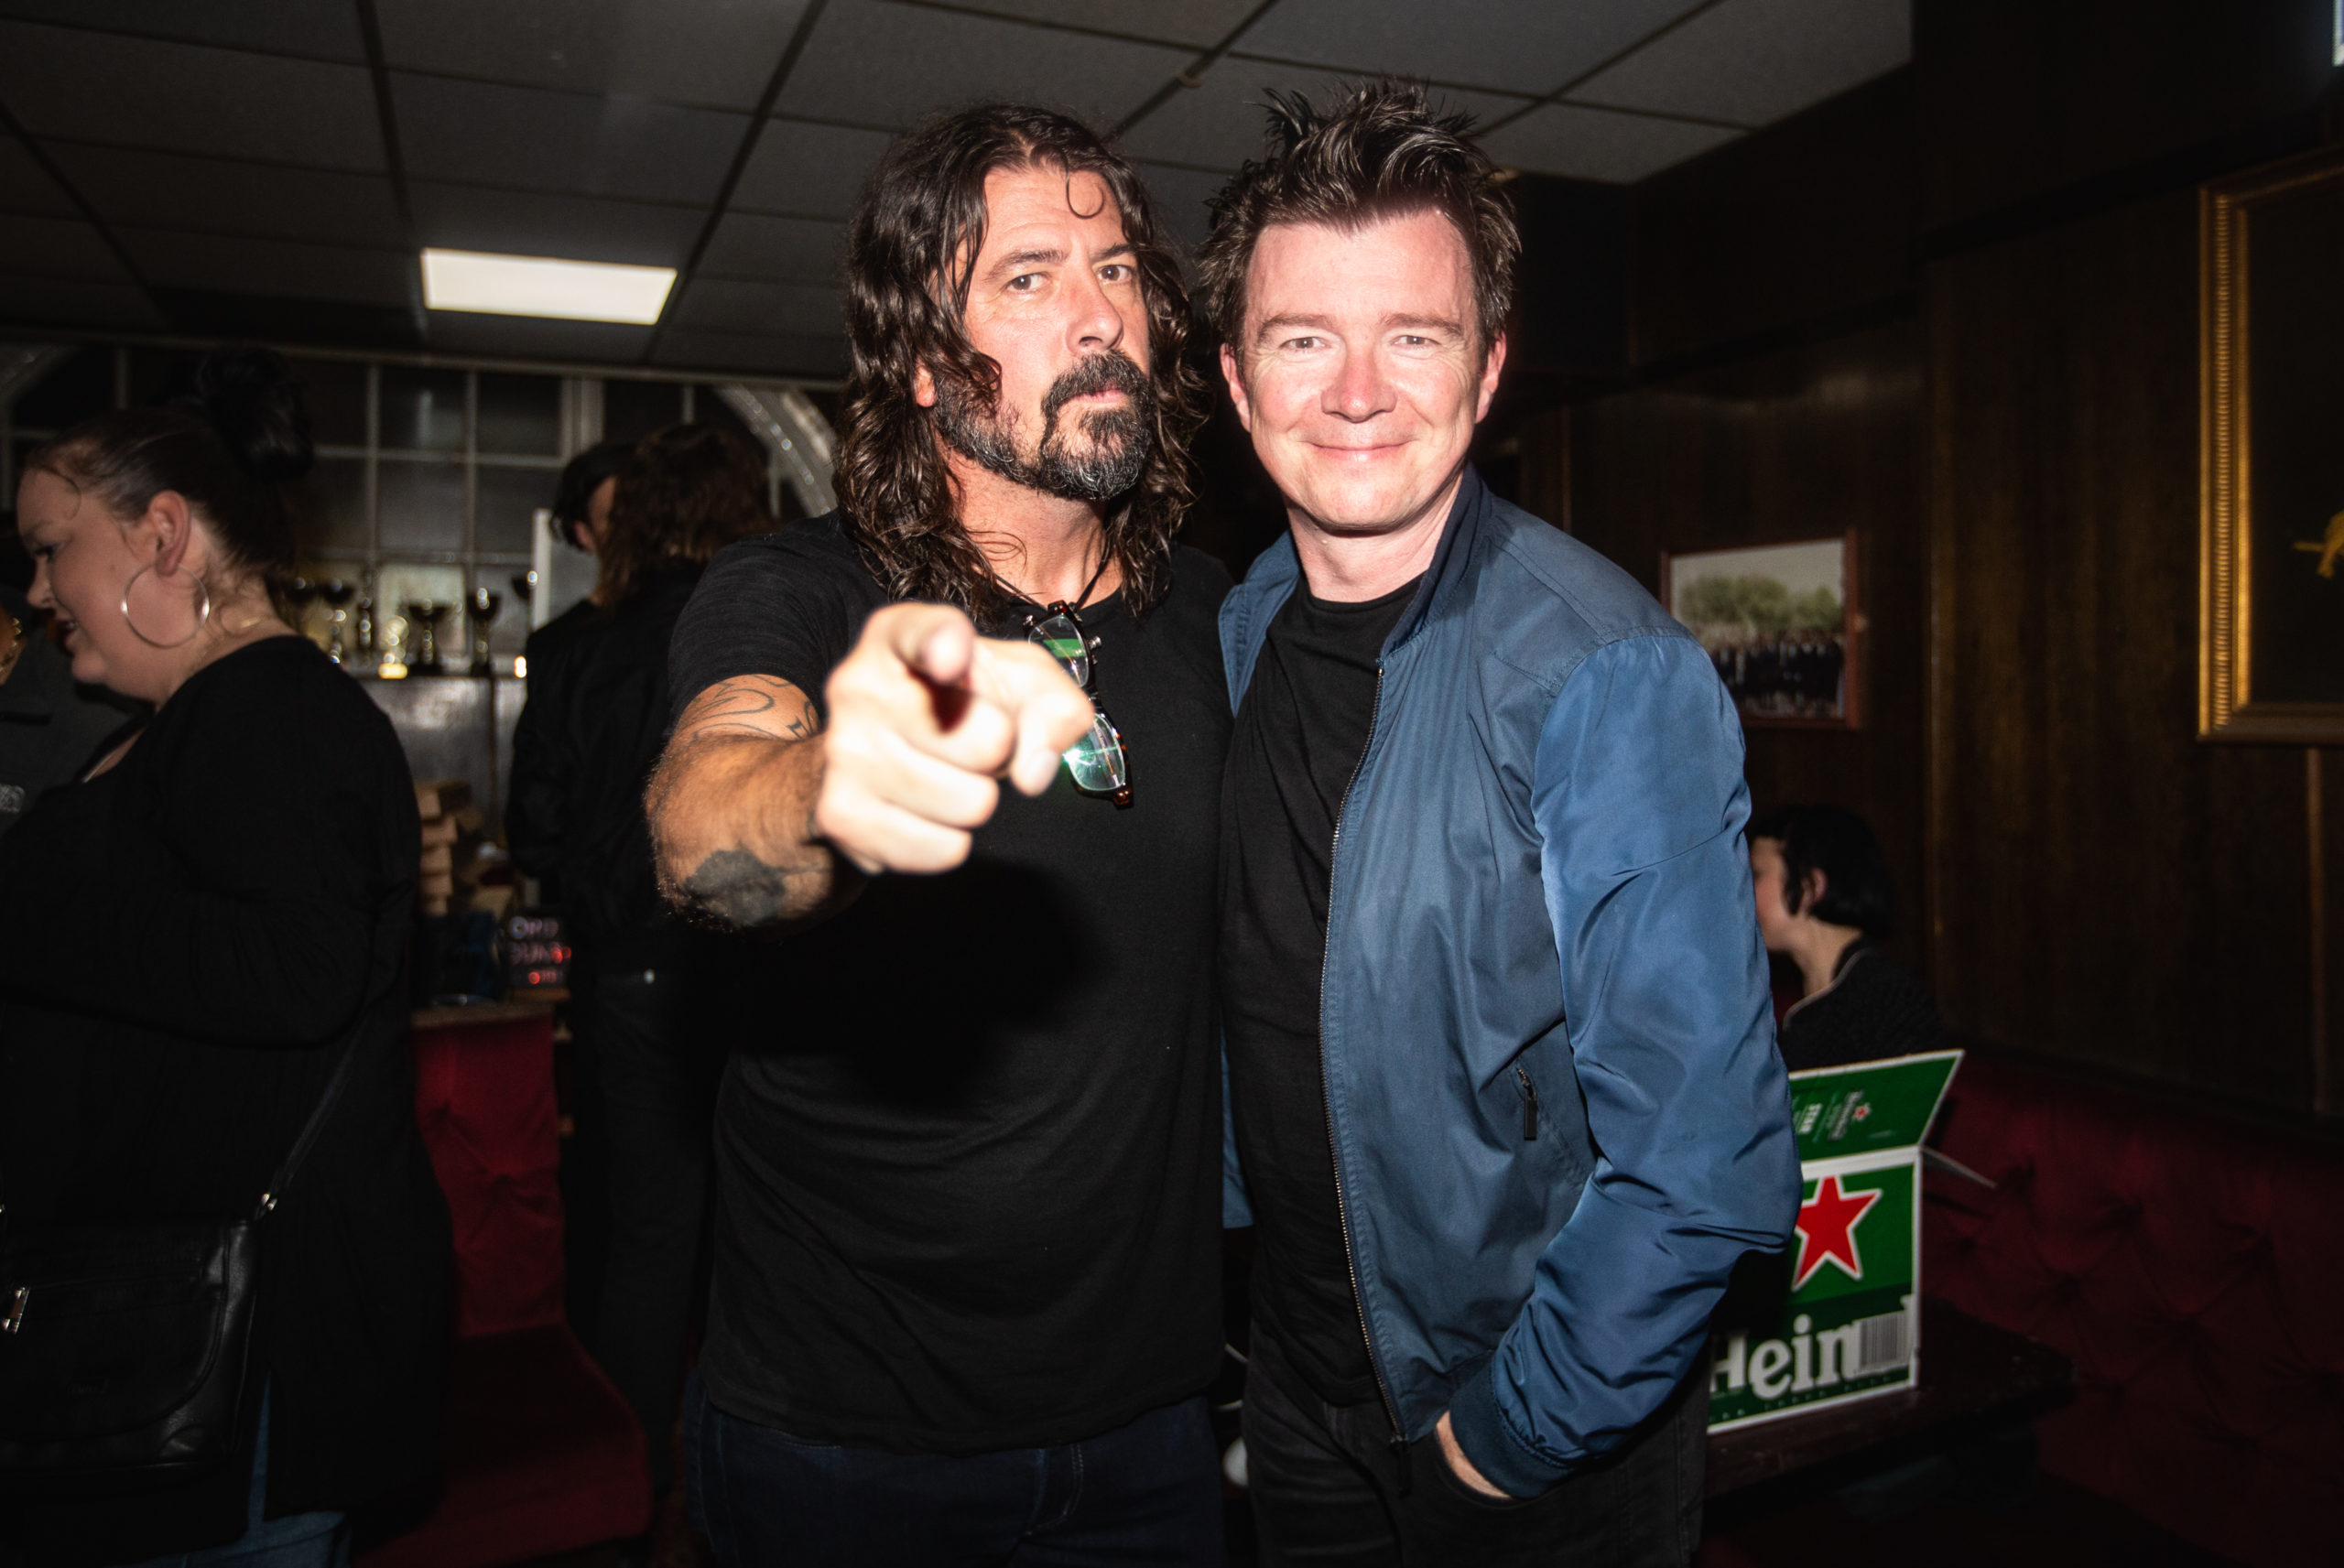 Dave Grohl and Rick Astley at Club NME